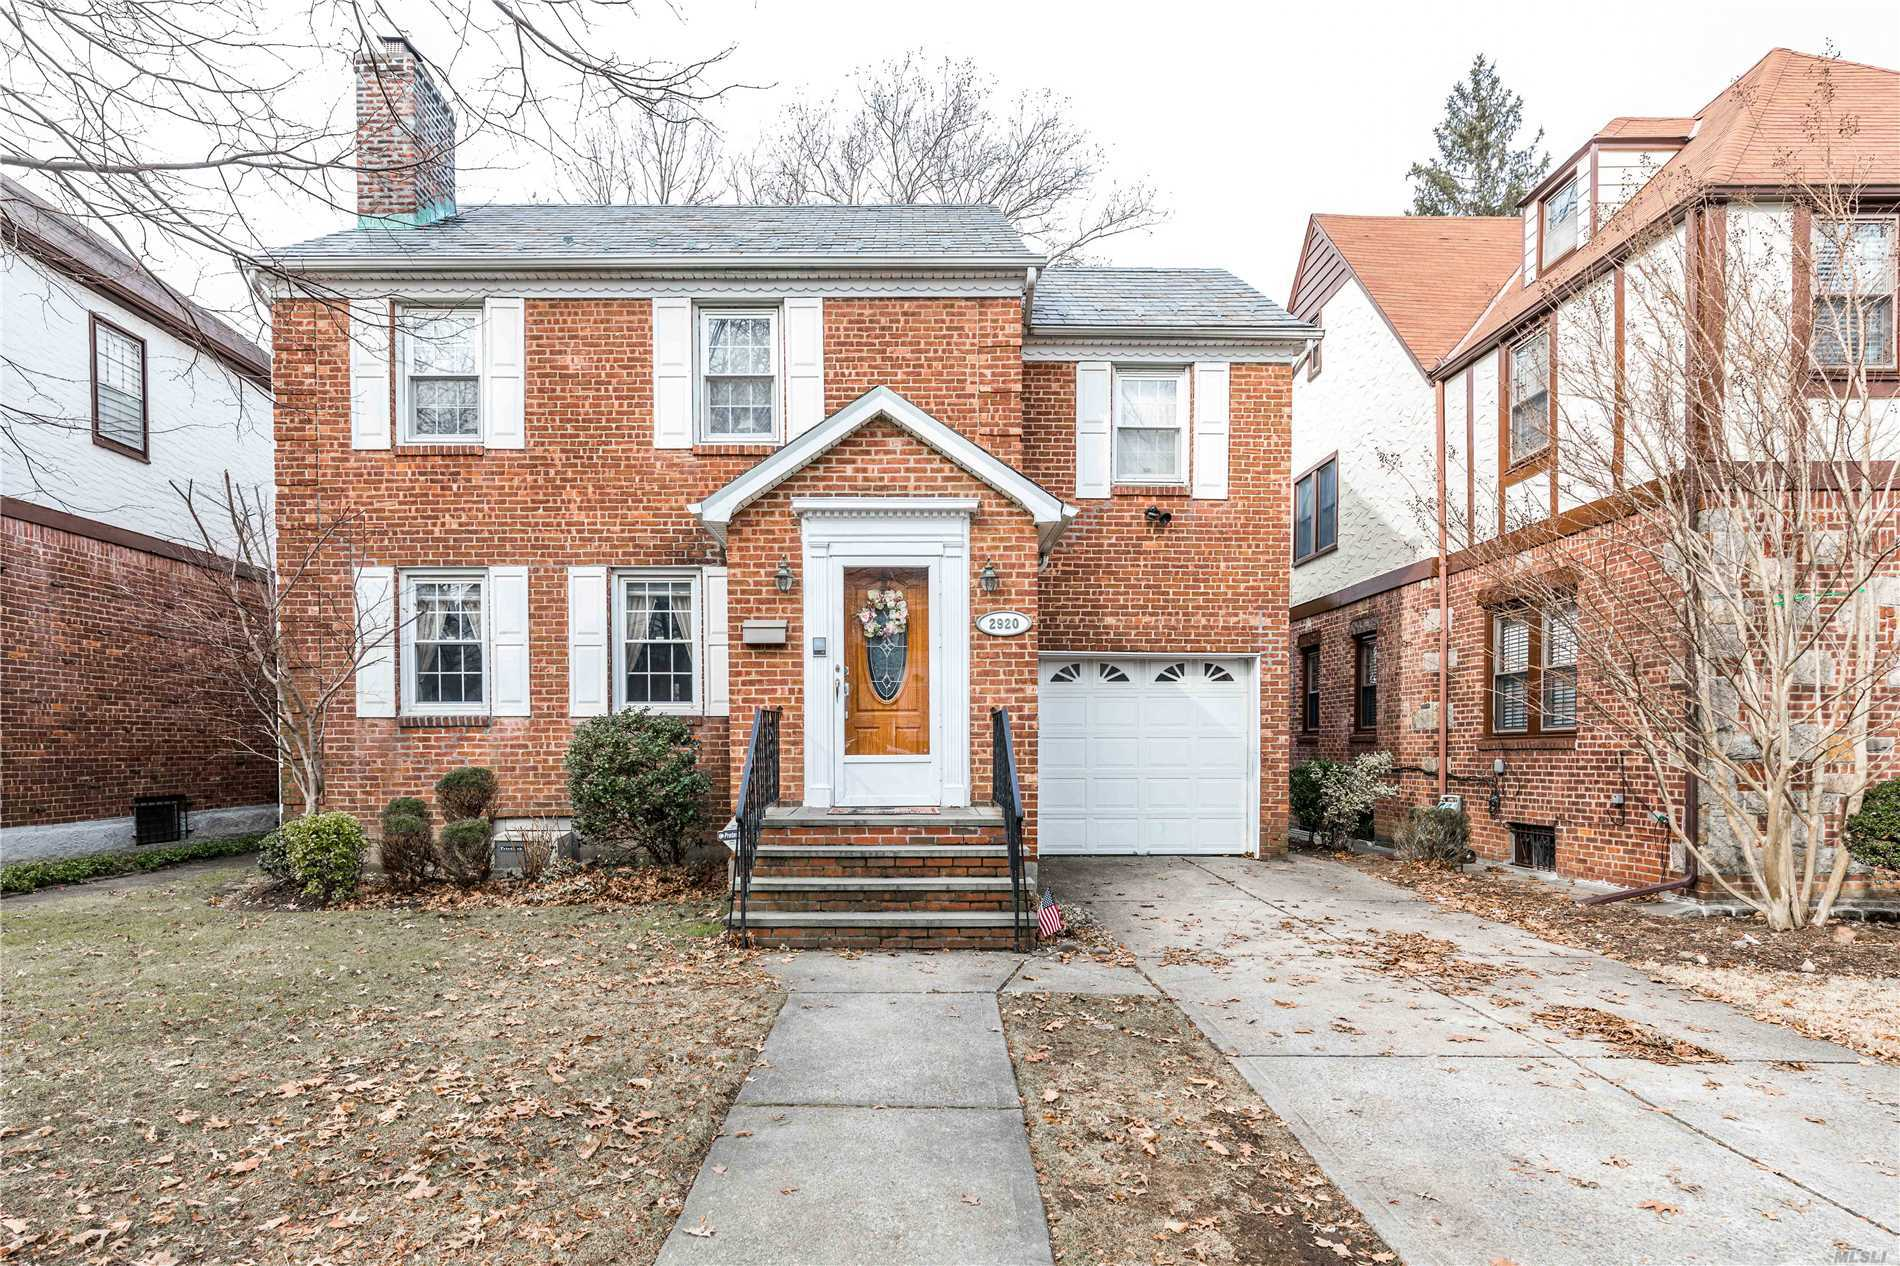 29-20 168th St 11358 - One of Flushing Homes for Sale